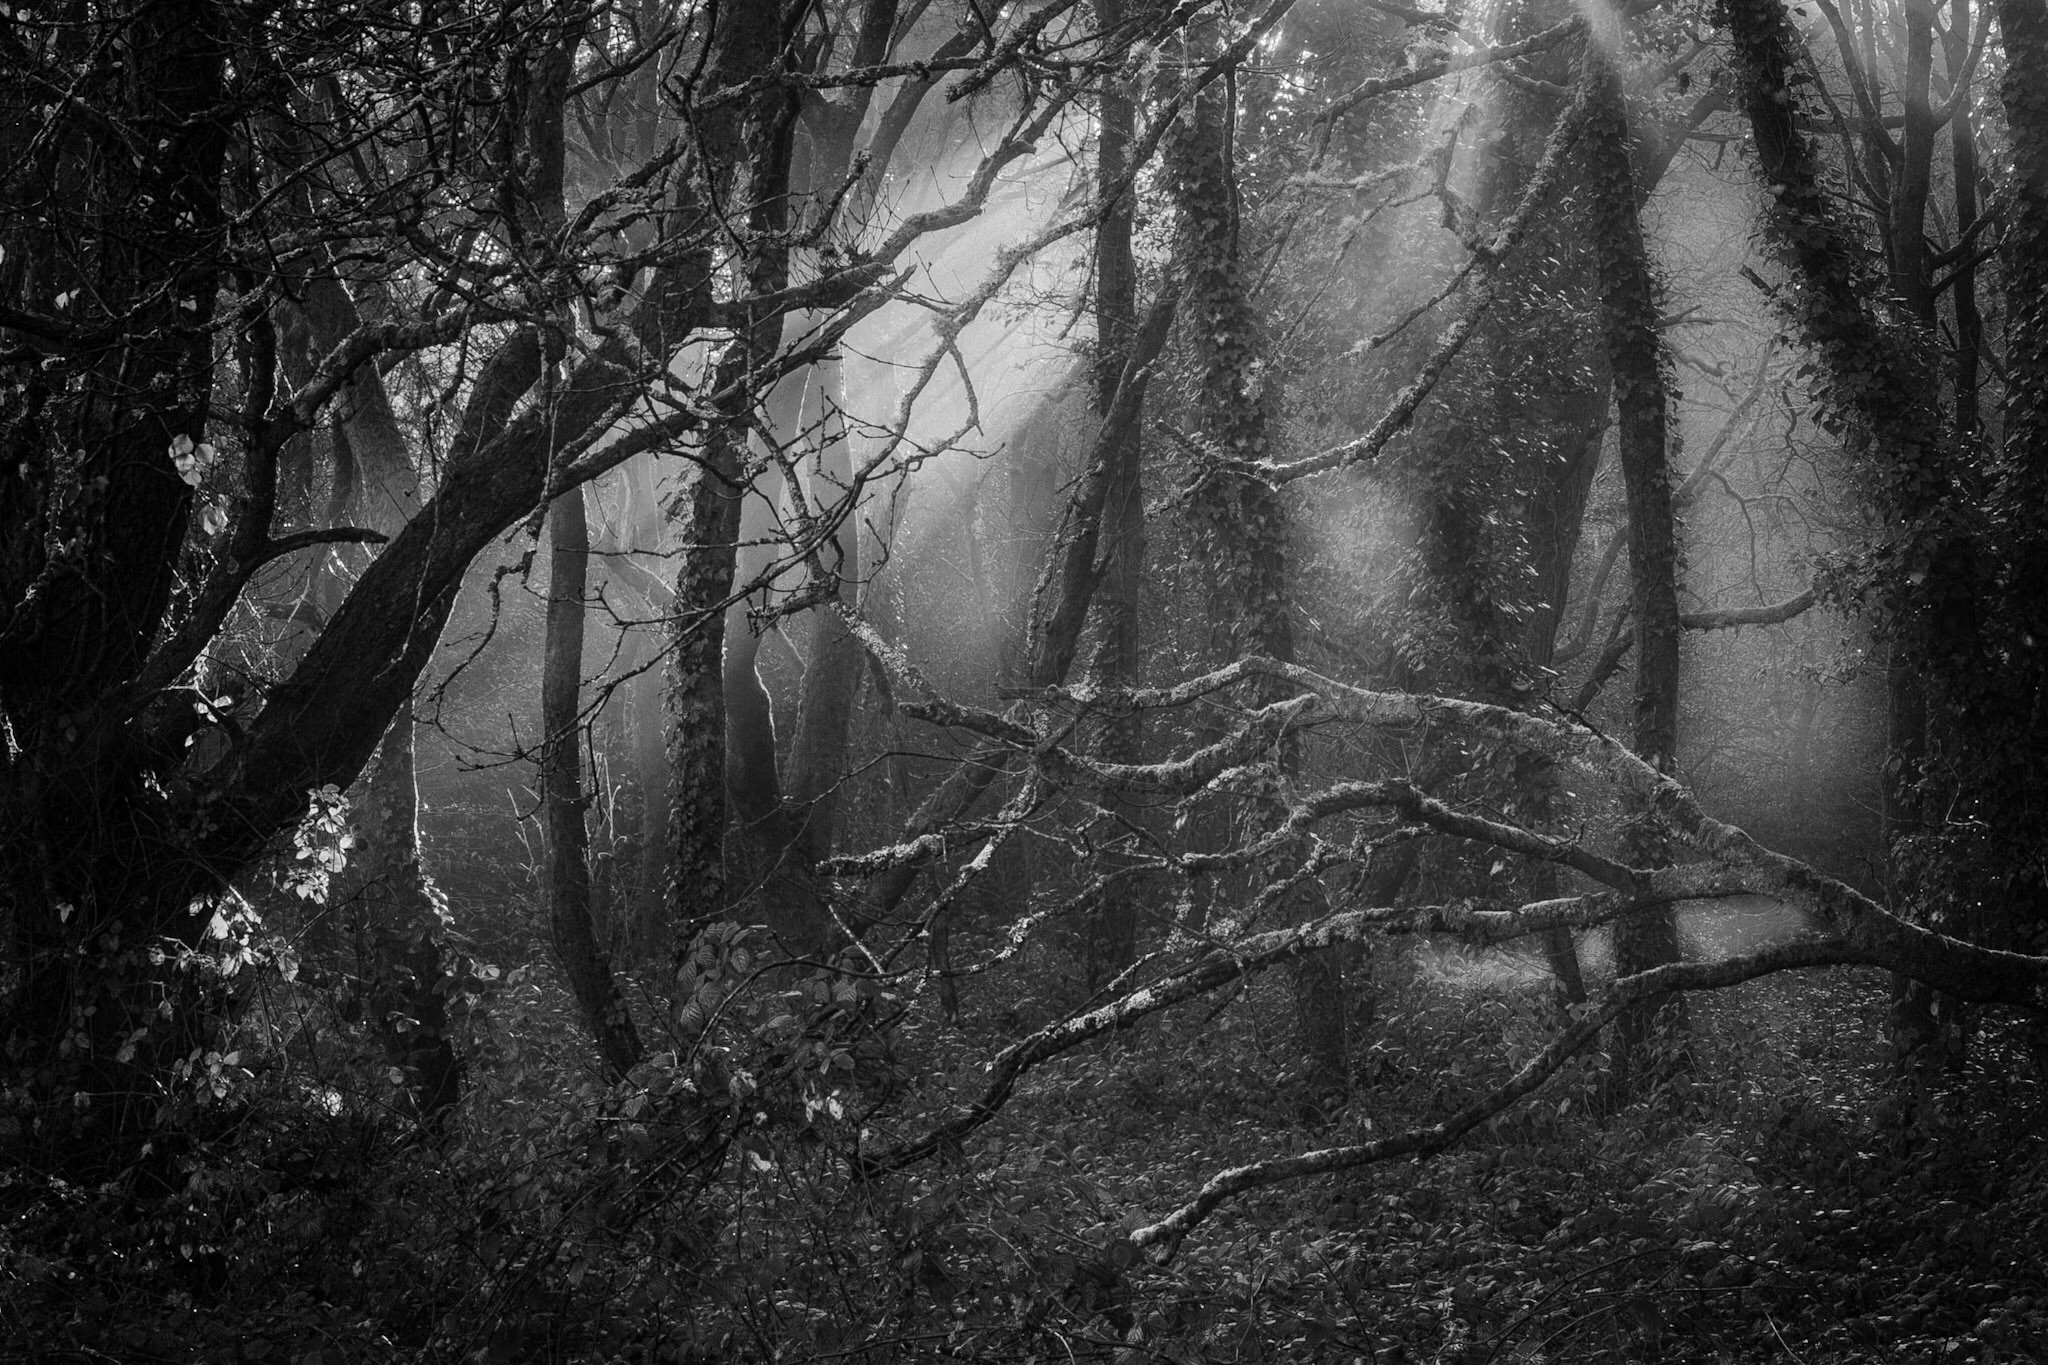 Moody mysterious woods in black and white